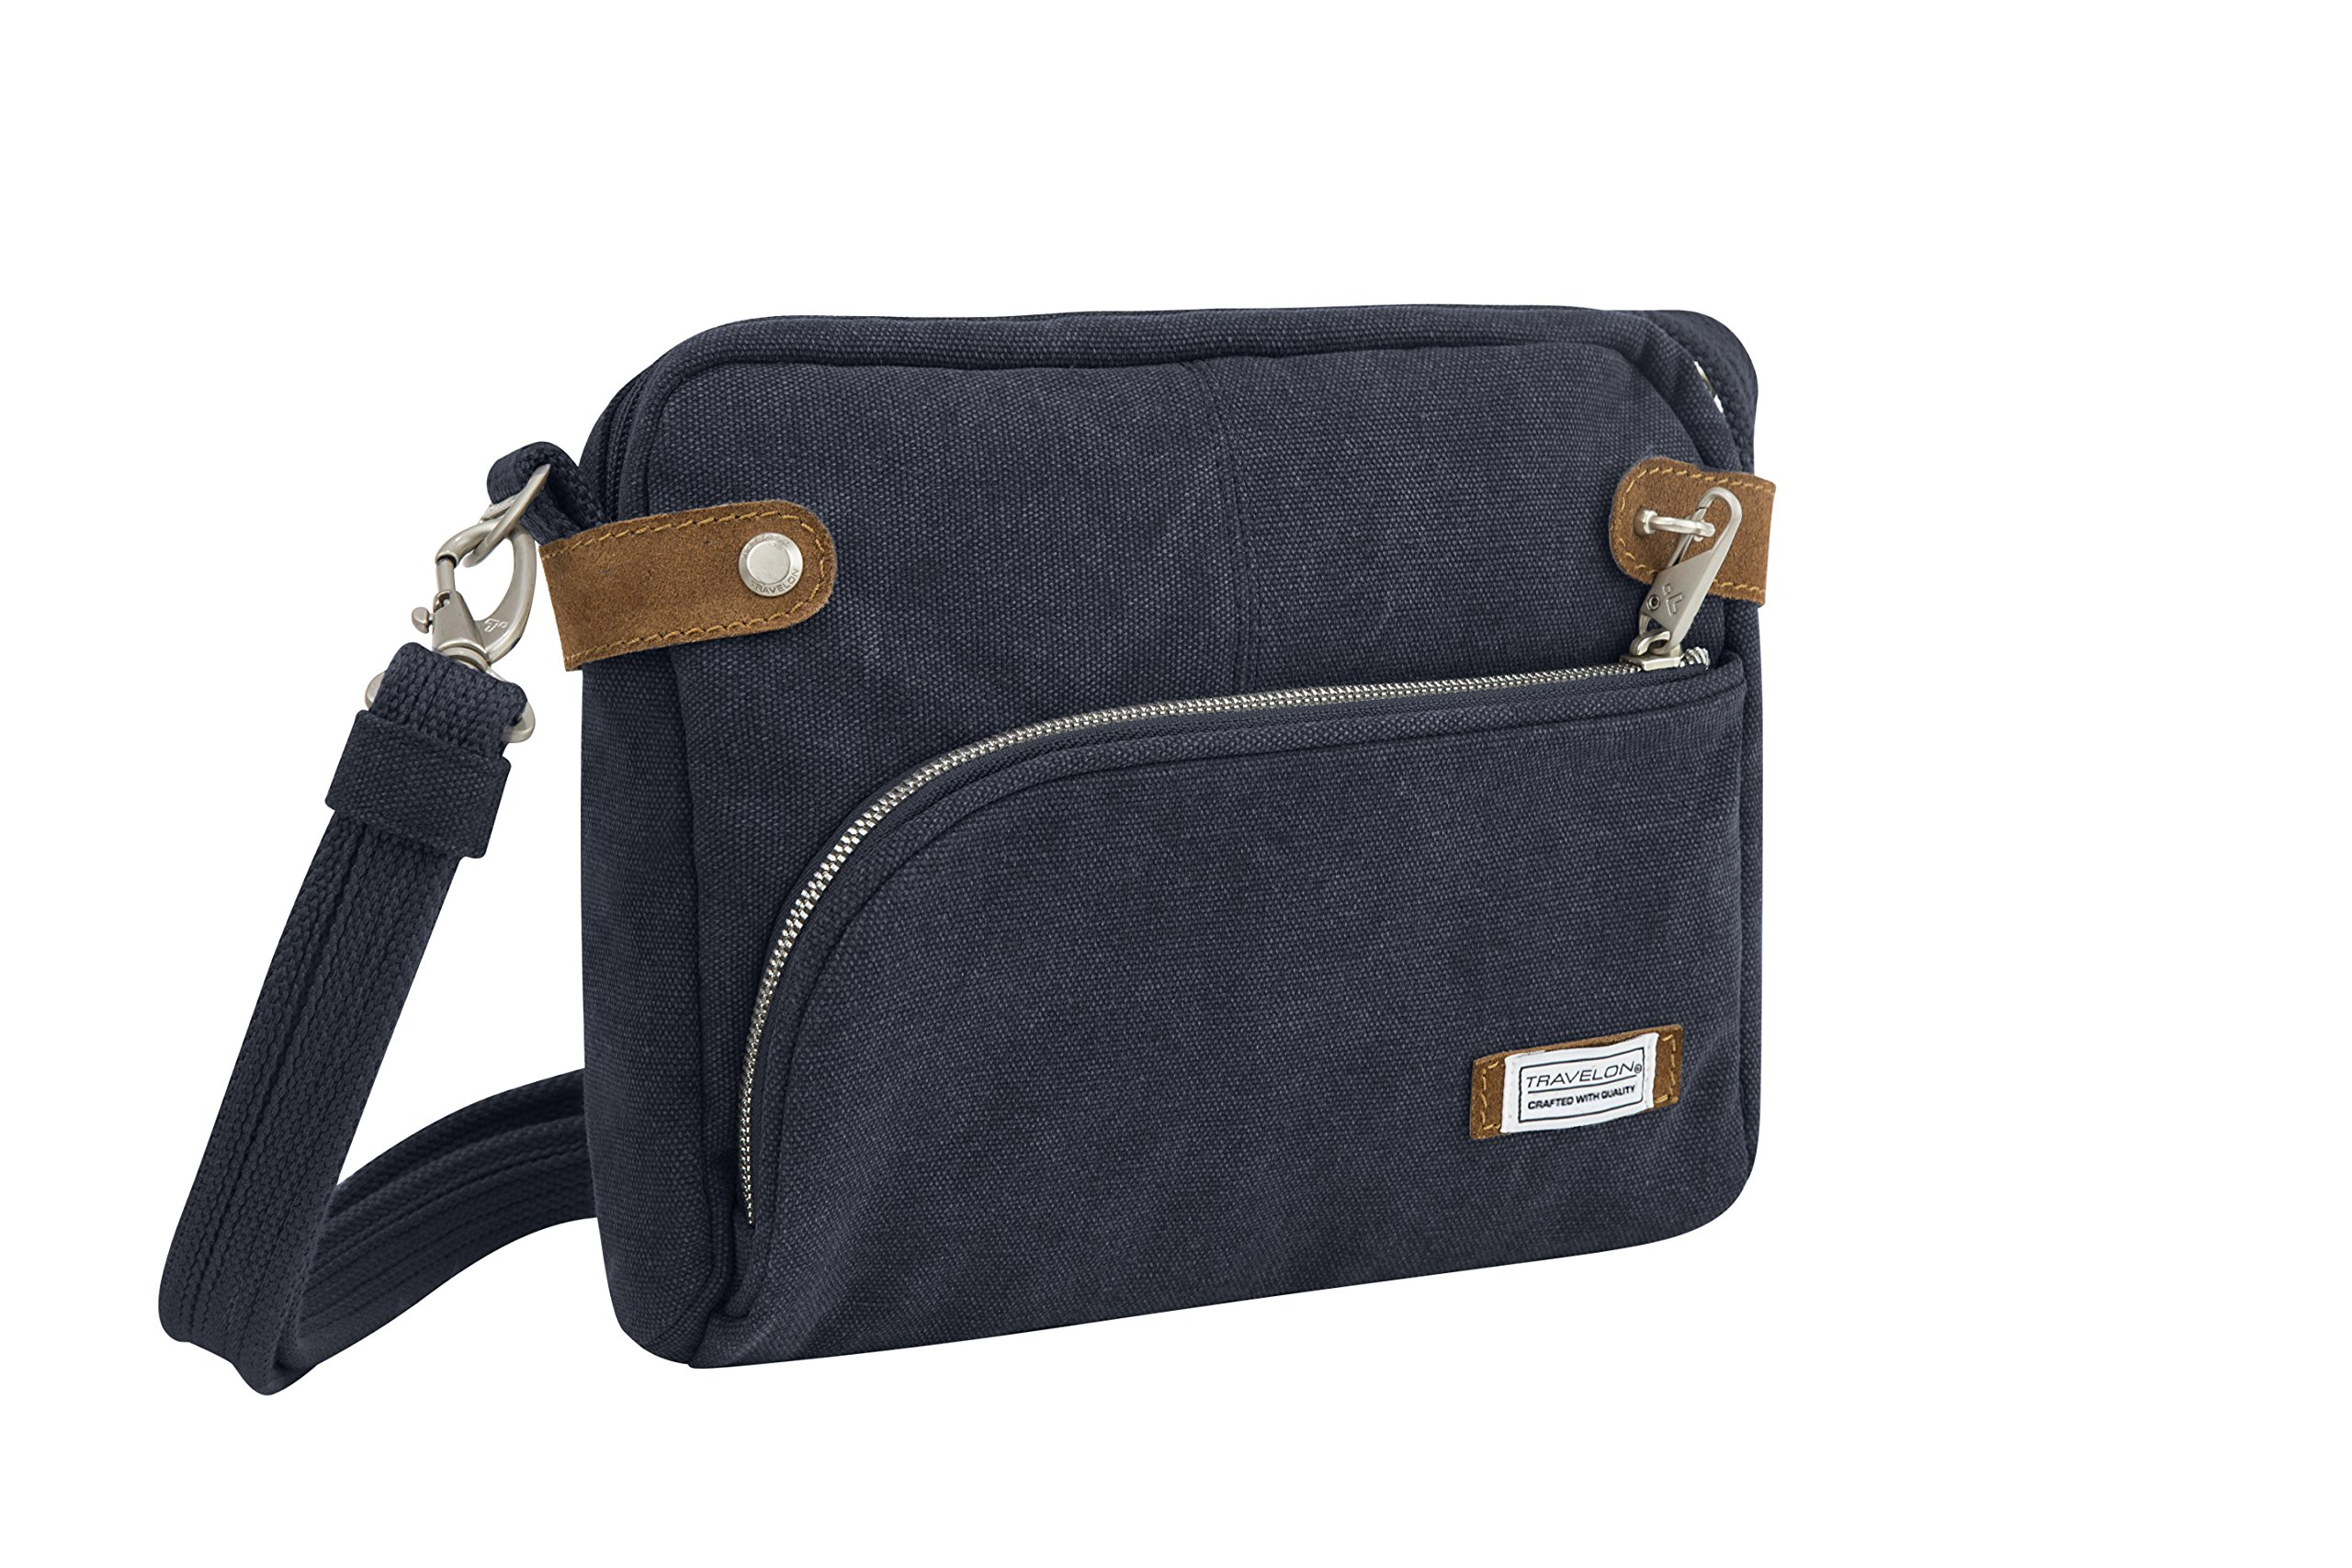 Travelon Anti-theft Heritage Crossbody Bag, Indigo